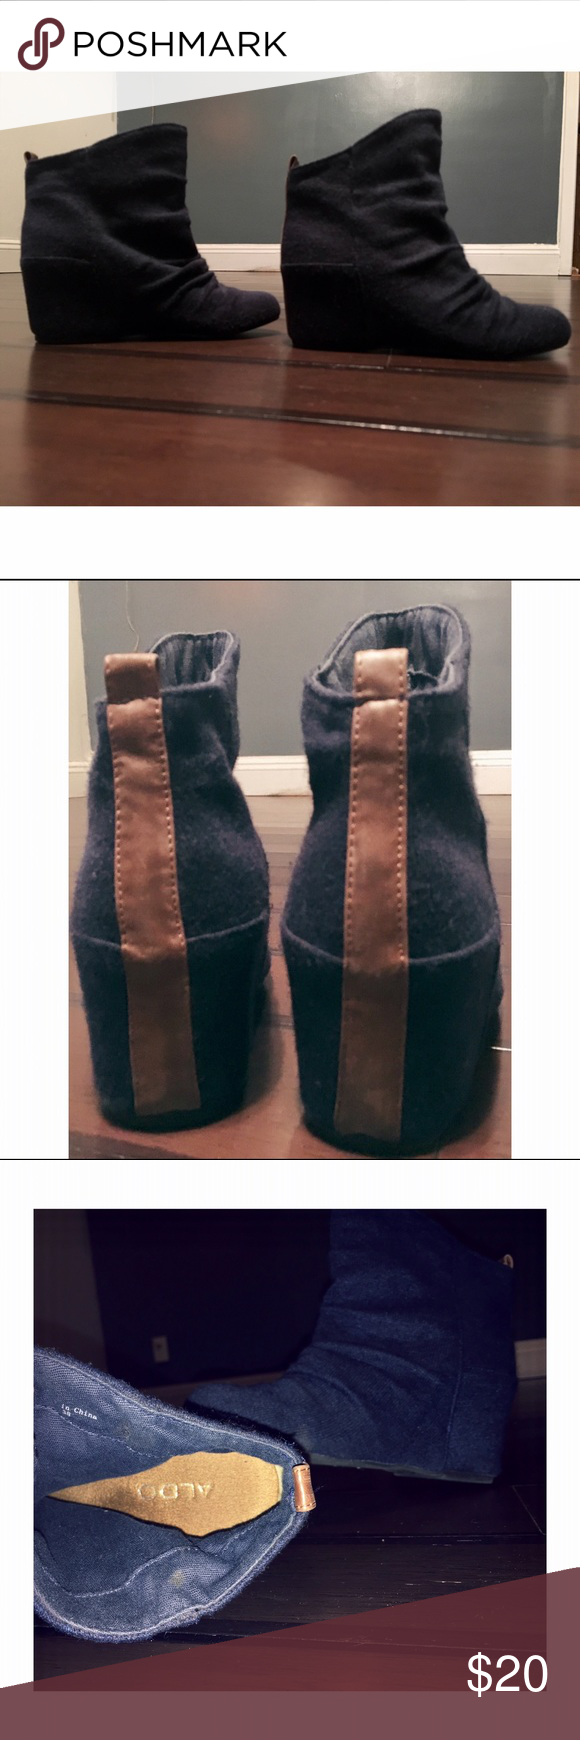 Aldo concealed heeled bootie size 8 Knit material in Navy blue with brown leather trim. Aldo Shoes Heeled Boots